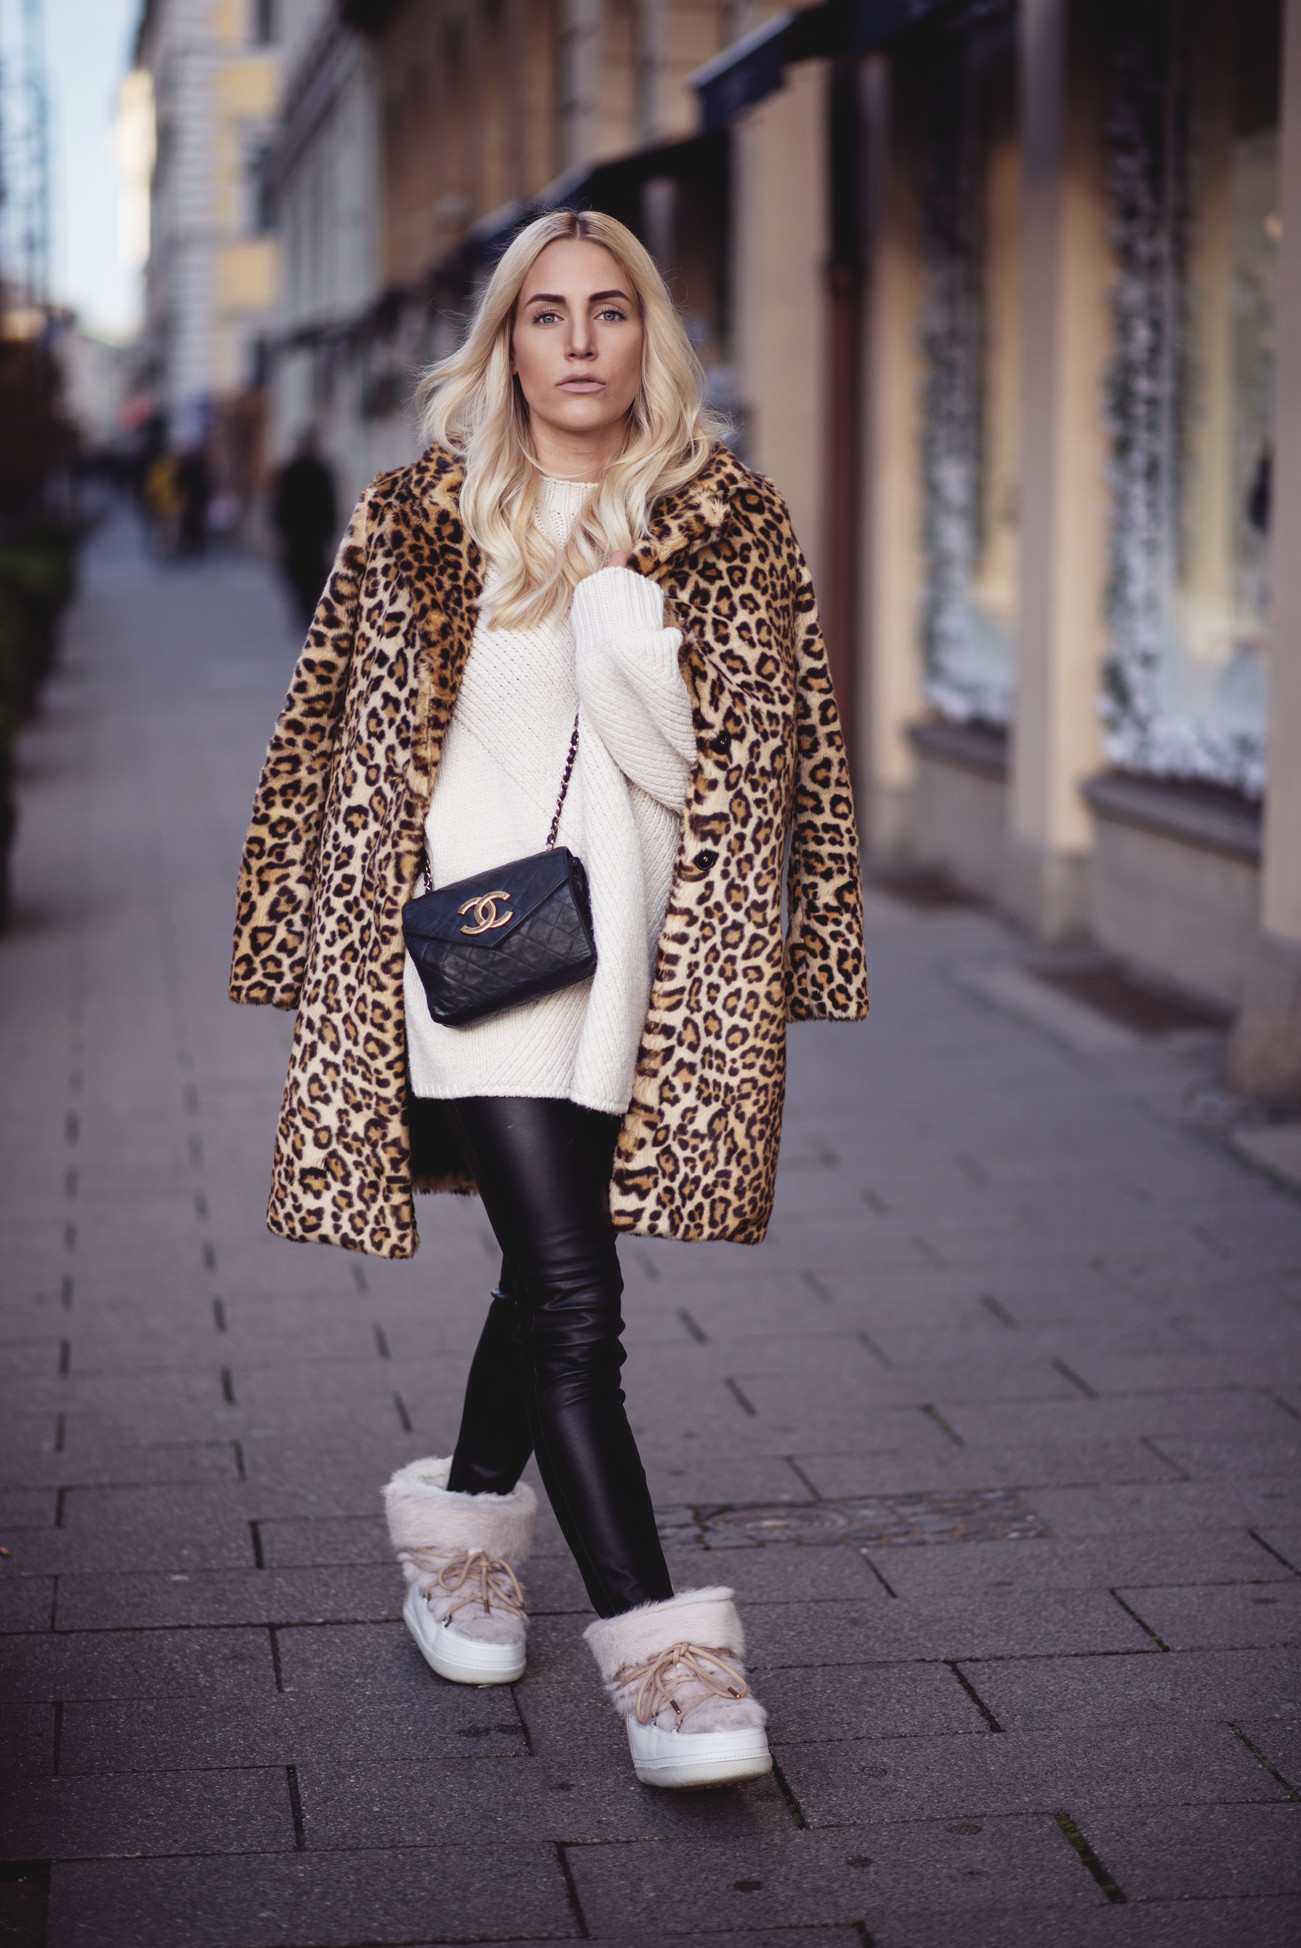 fashion-fashionblogger-blogger-chanel-winter-cozy-knitwear-leo-sequinsophia2-dsc_6162